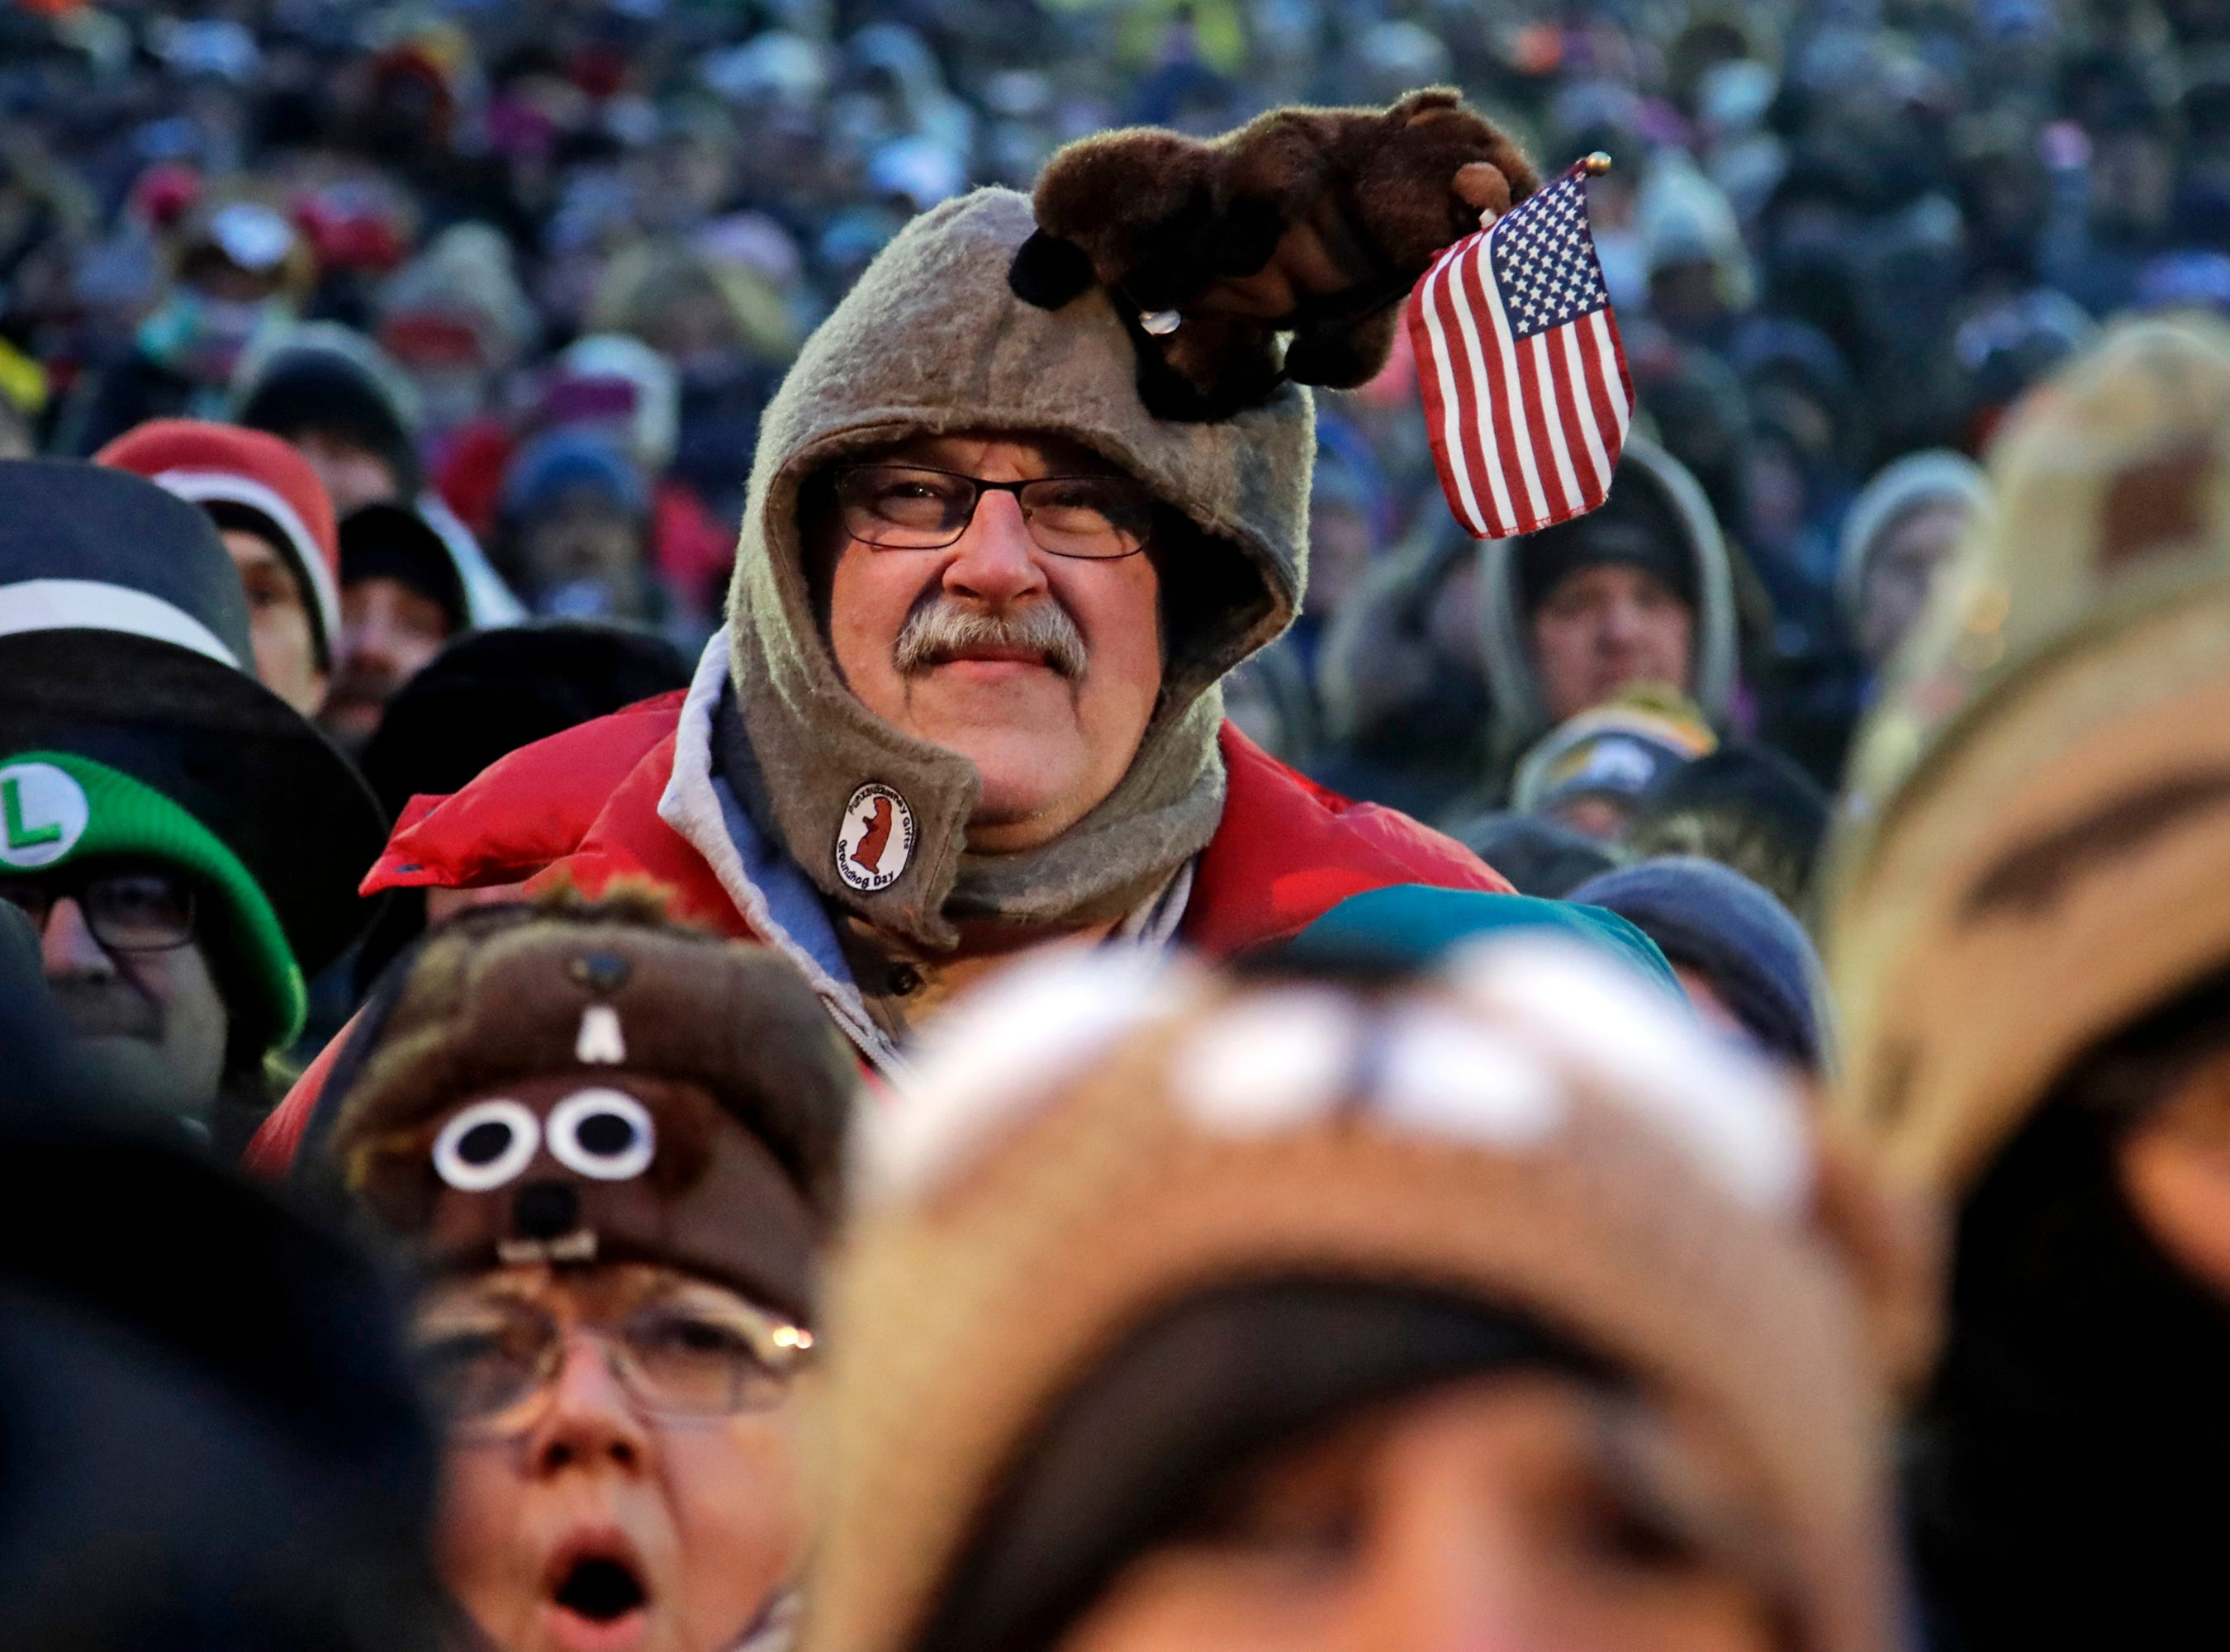 Al Donst of Belvidere, NJ, center, participates in the 133rd celebration of Groundhog Day on Gobbler's Knob in Punxsutawney, Pa. Saturday, Feb. 2, 2019. Phil's handlers said that the groundhog has forecast an early spring. (AP Photo/Gene J. Puskar)